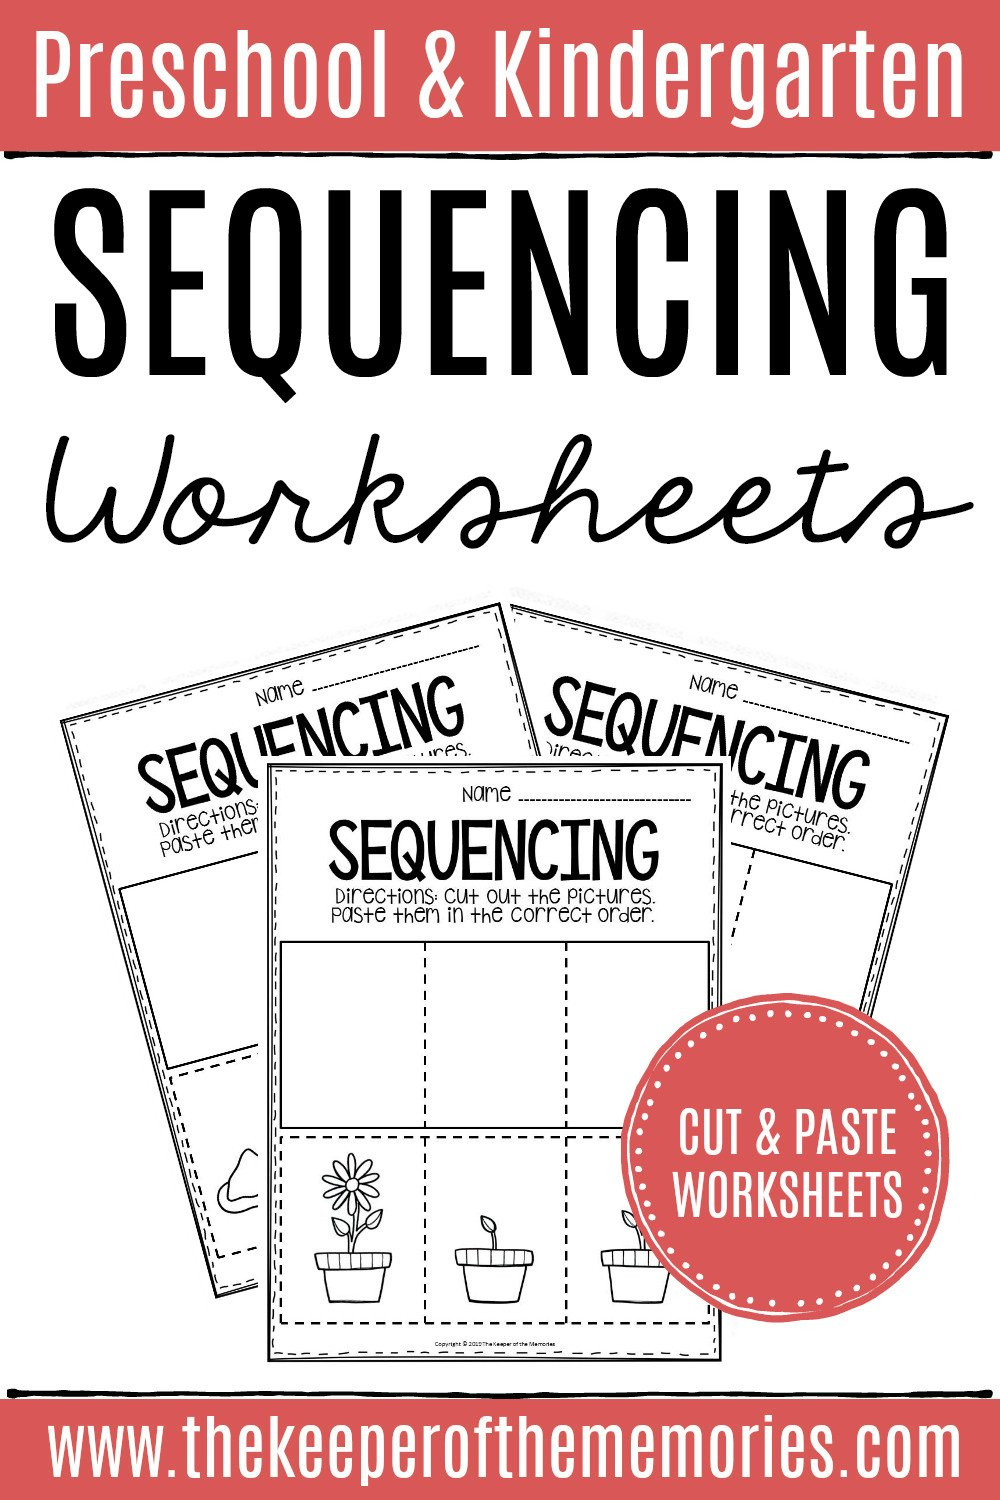 Sequencing events Worksheets 3 Step Sequencing Worksheets the Keeper Of the Memories